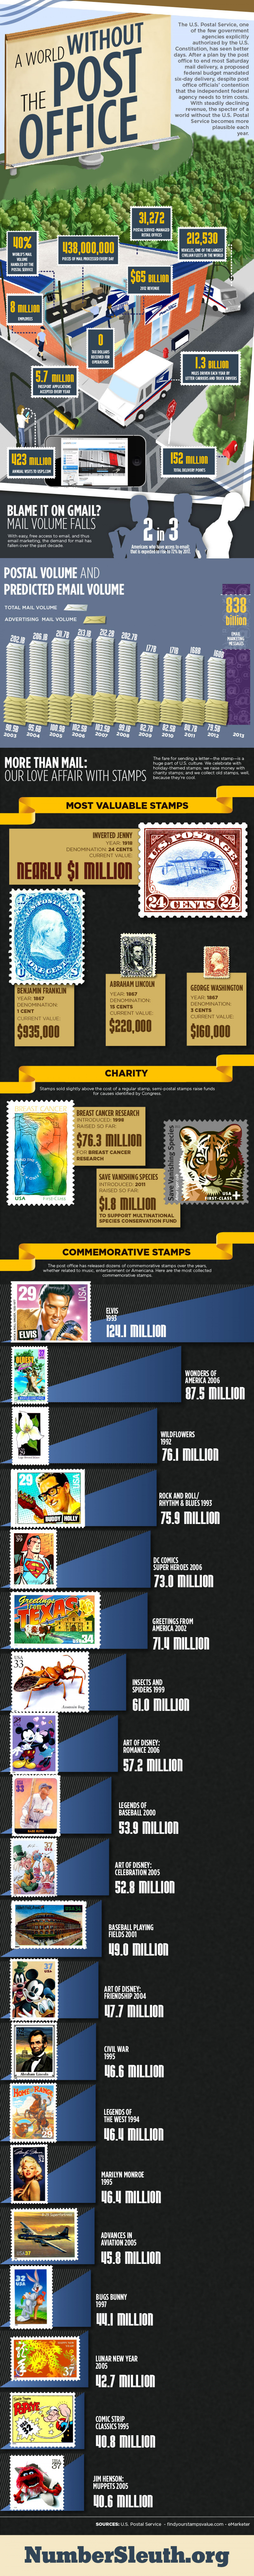 A World Without the Post Office Infographic